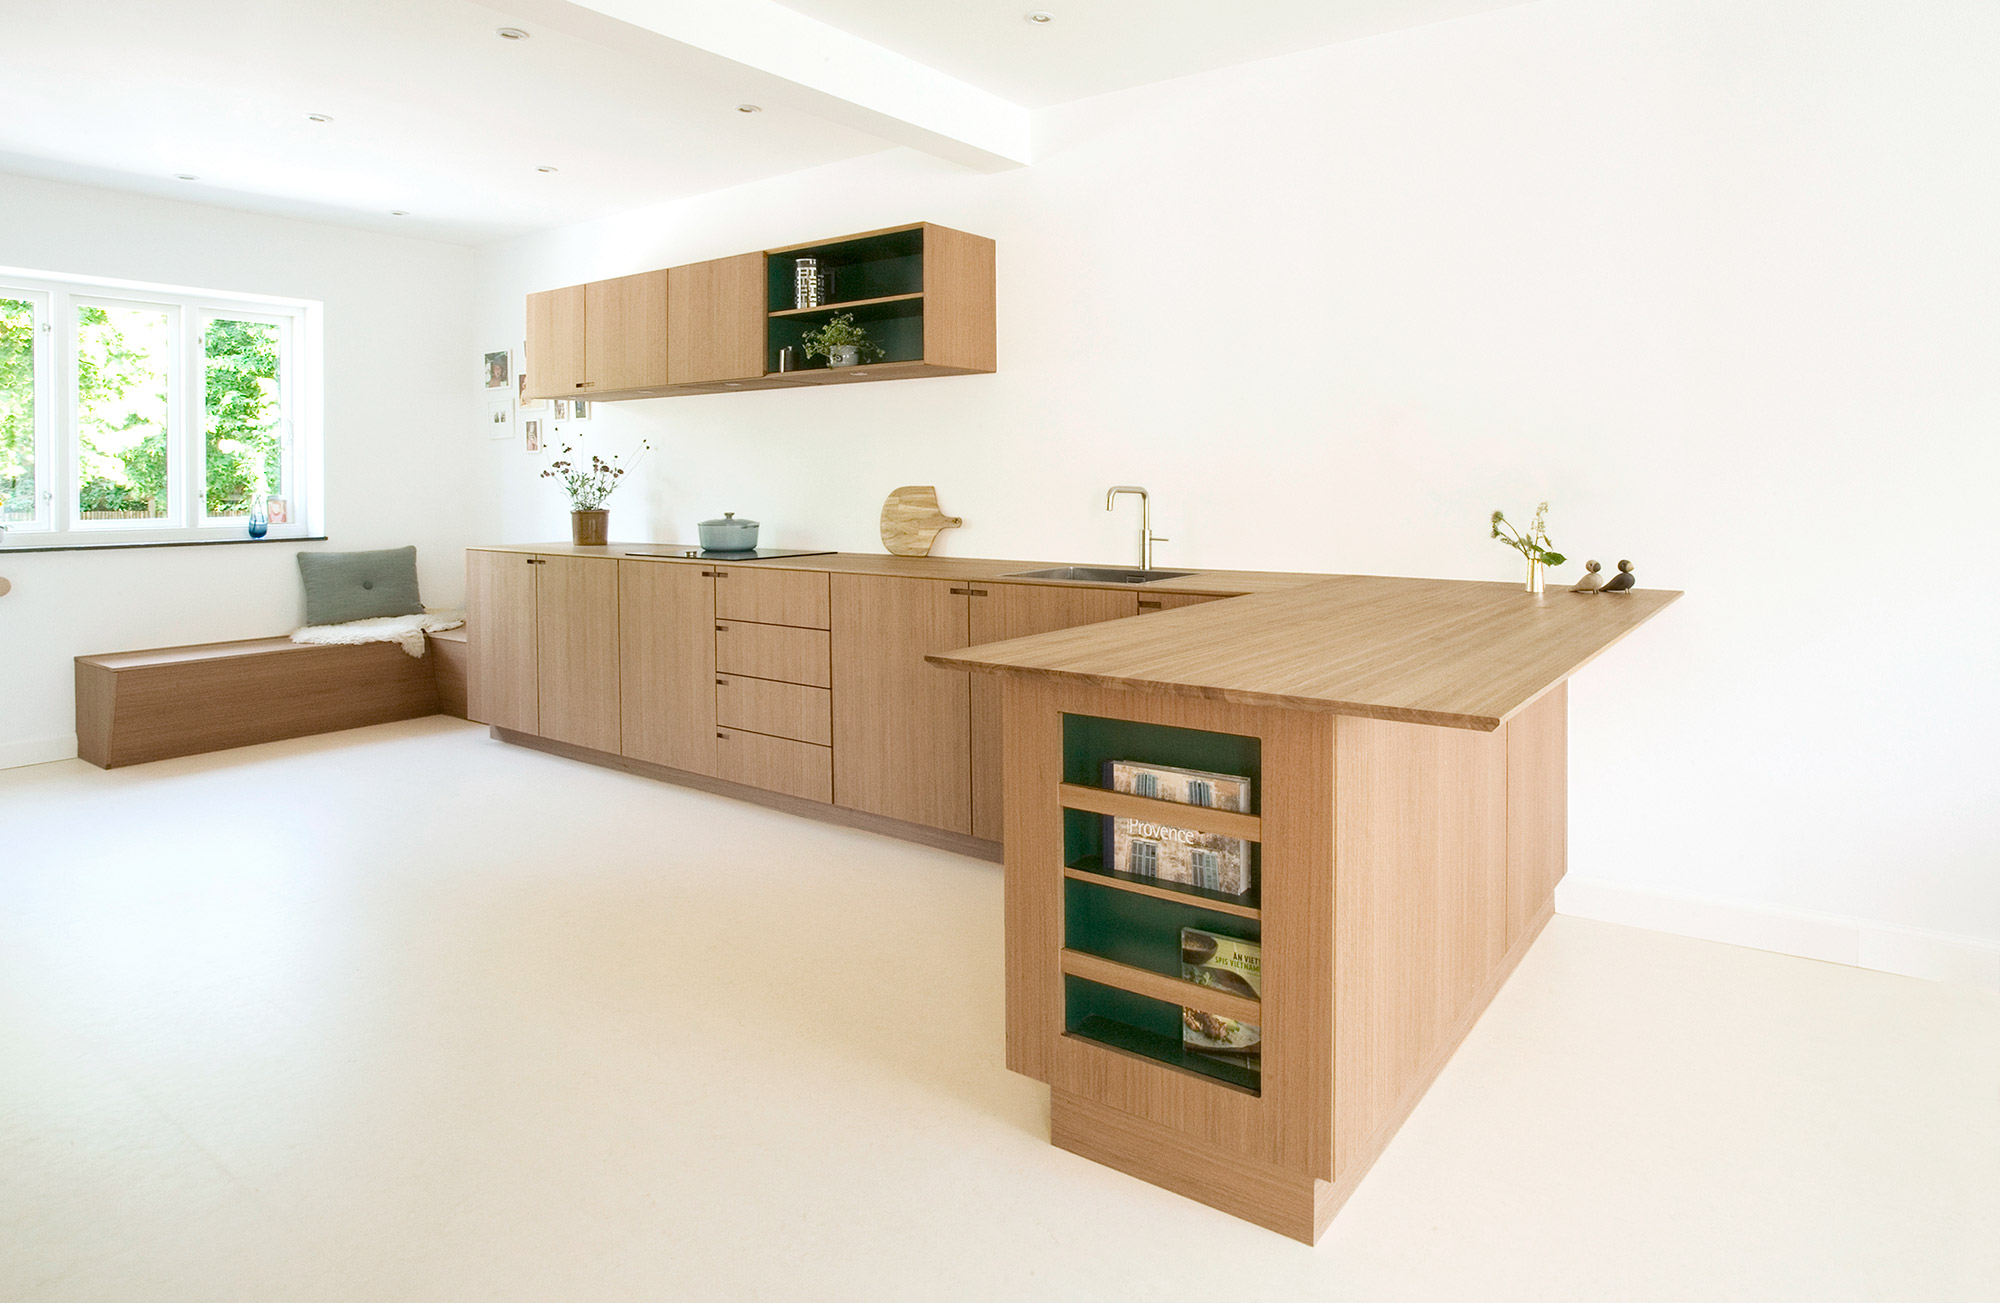 Minimalist oak wood kitchen by cabinet maker - Nicolaj Bo™